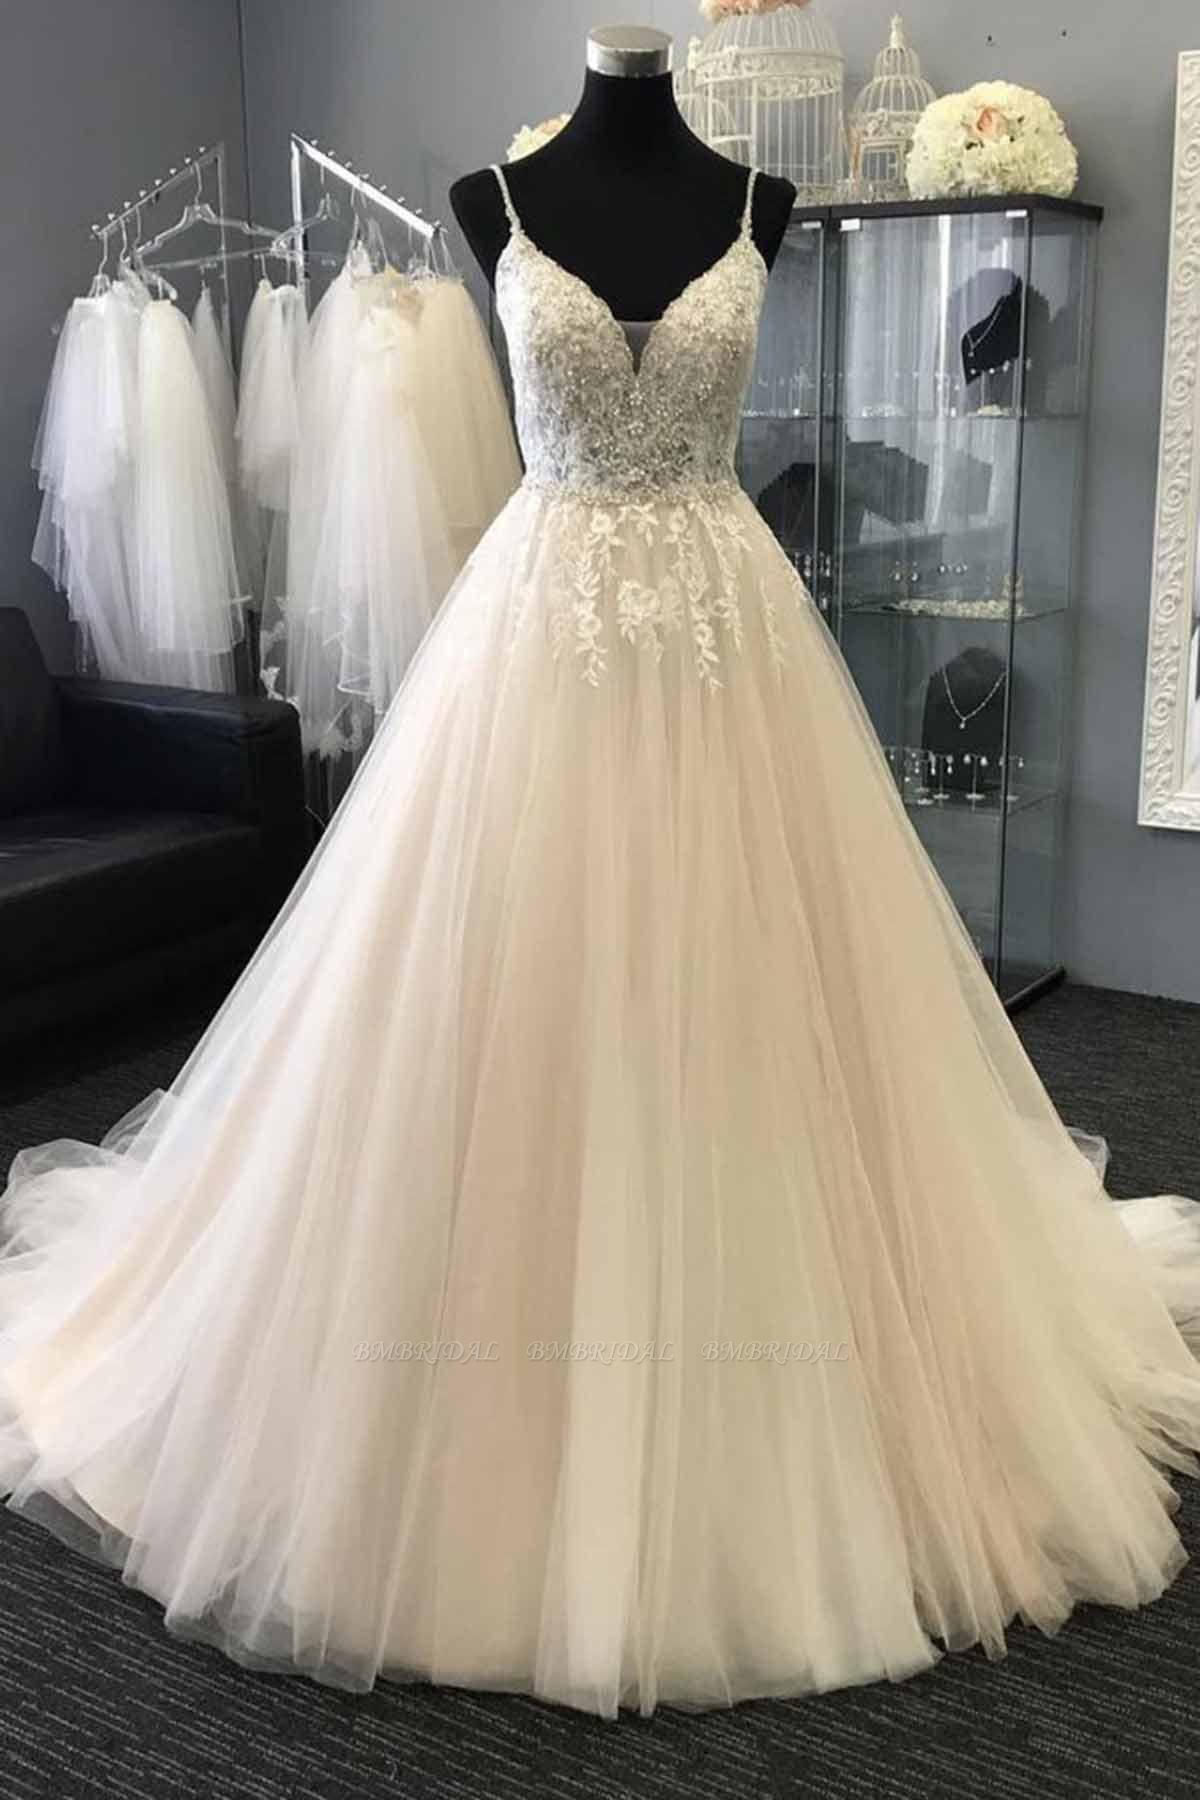 Gorgeous Sweetheart Lace Top White Long Wedding Dress Spaghetti Straps Sleeveless Bridal Gowns On Sale